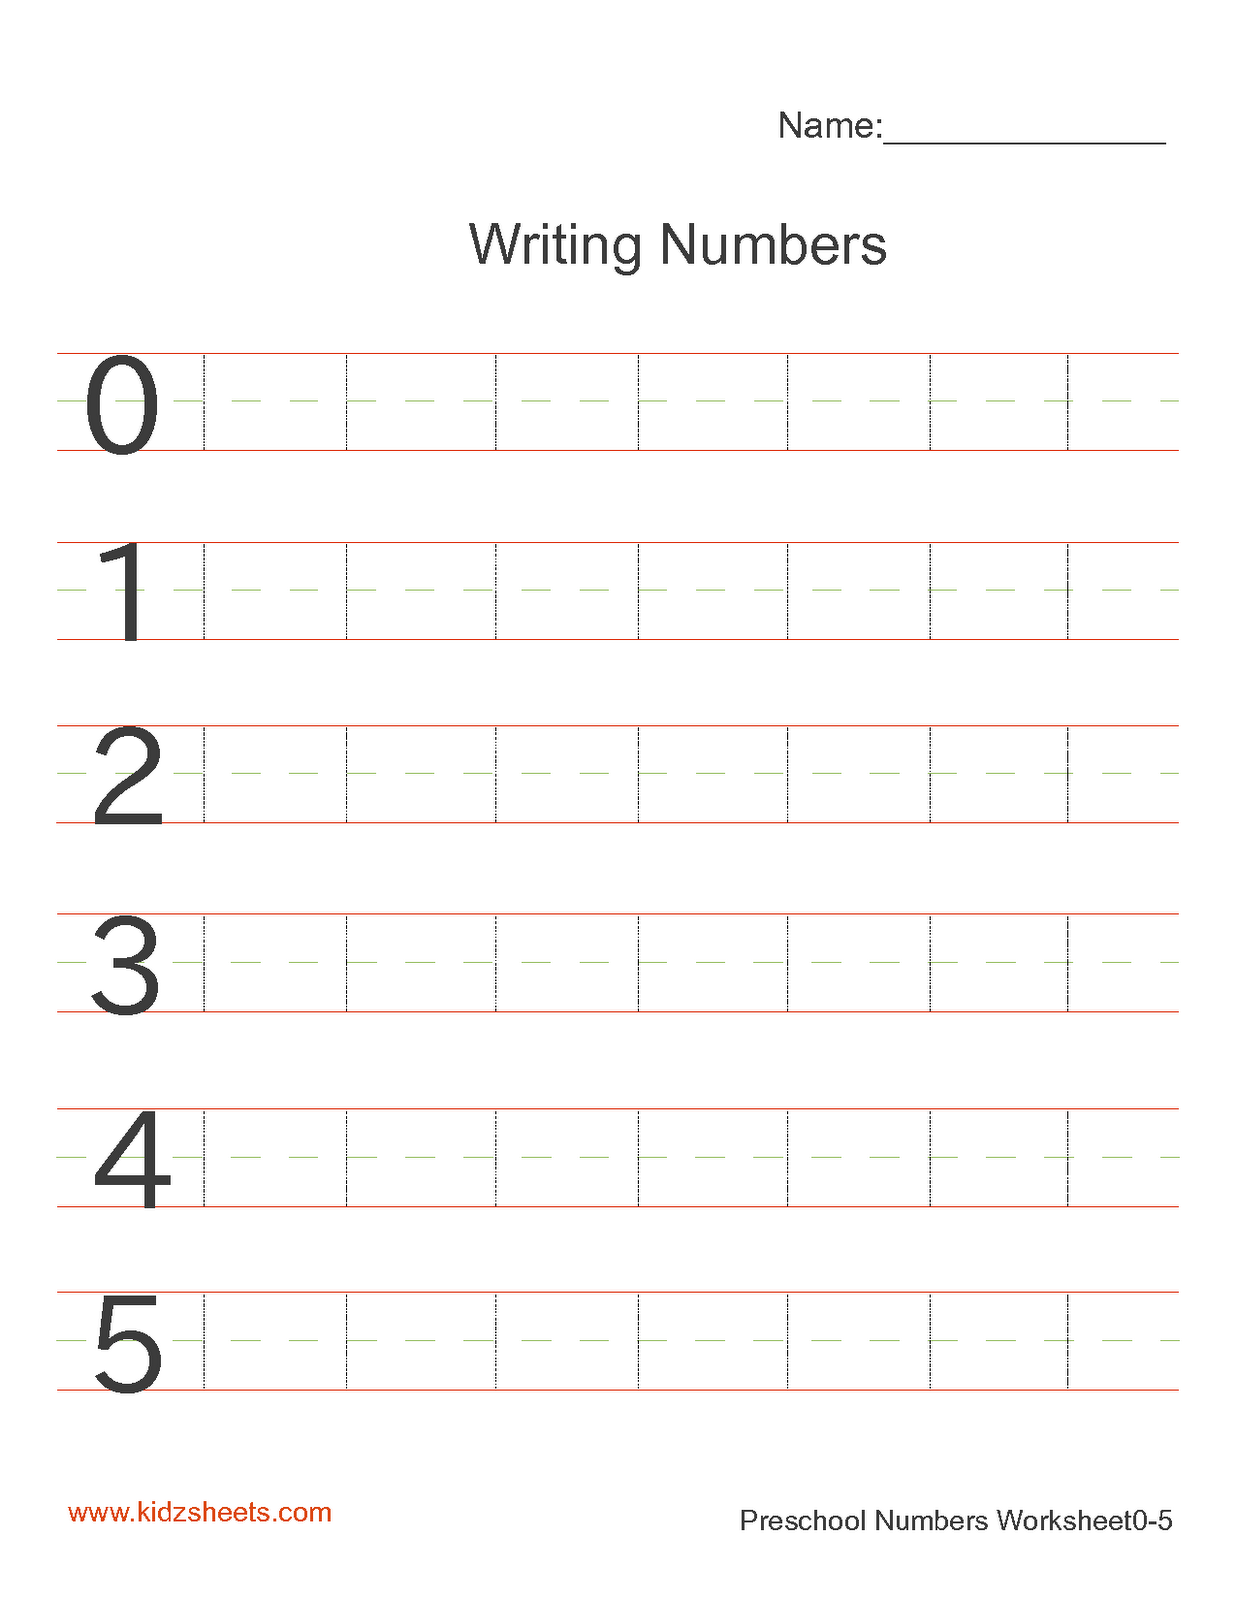 Worksheet 500458 Create Handwriting Worksheets for Kindergarten – Custom Multiplication Worksheets